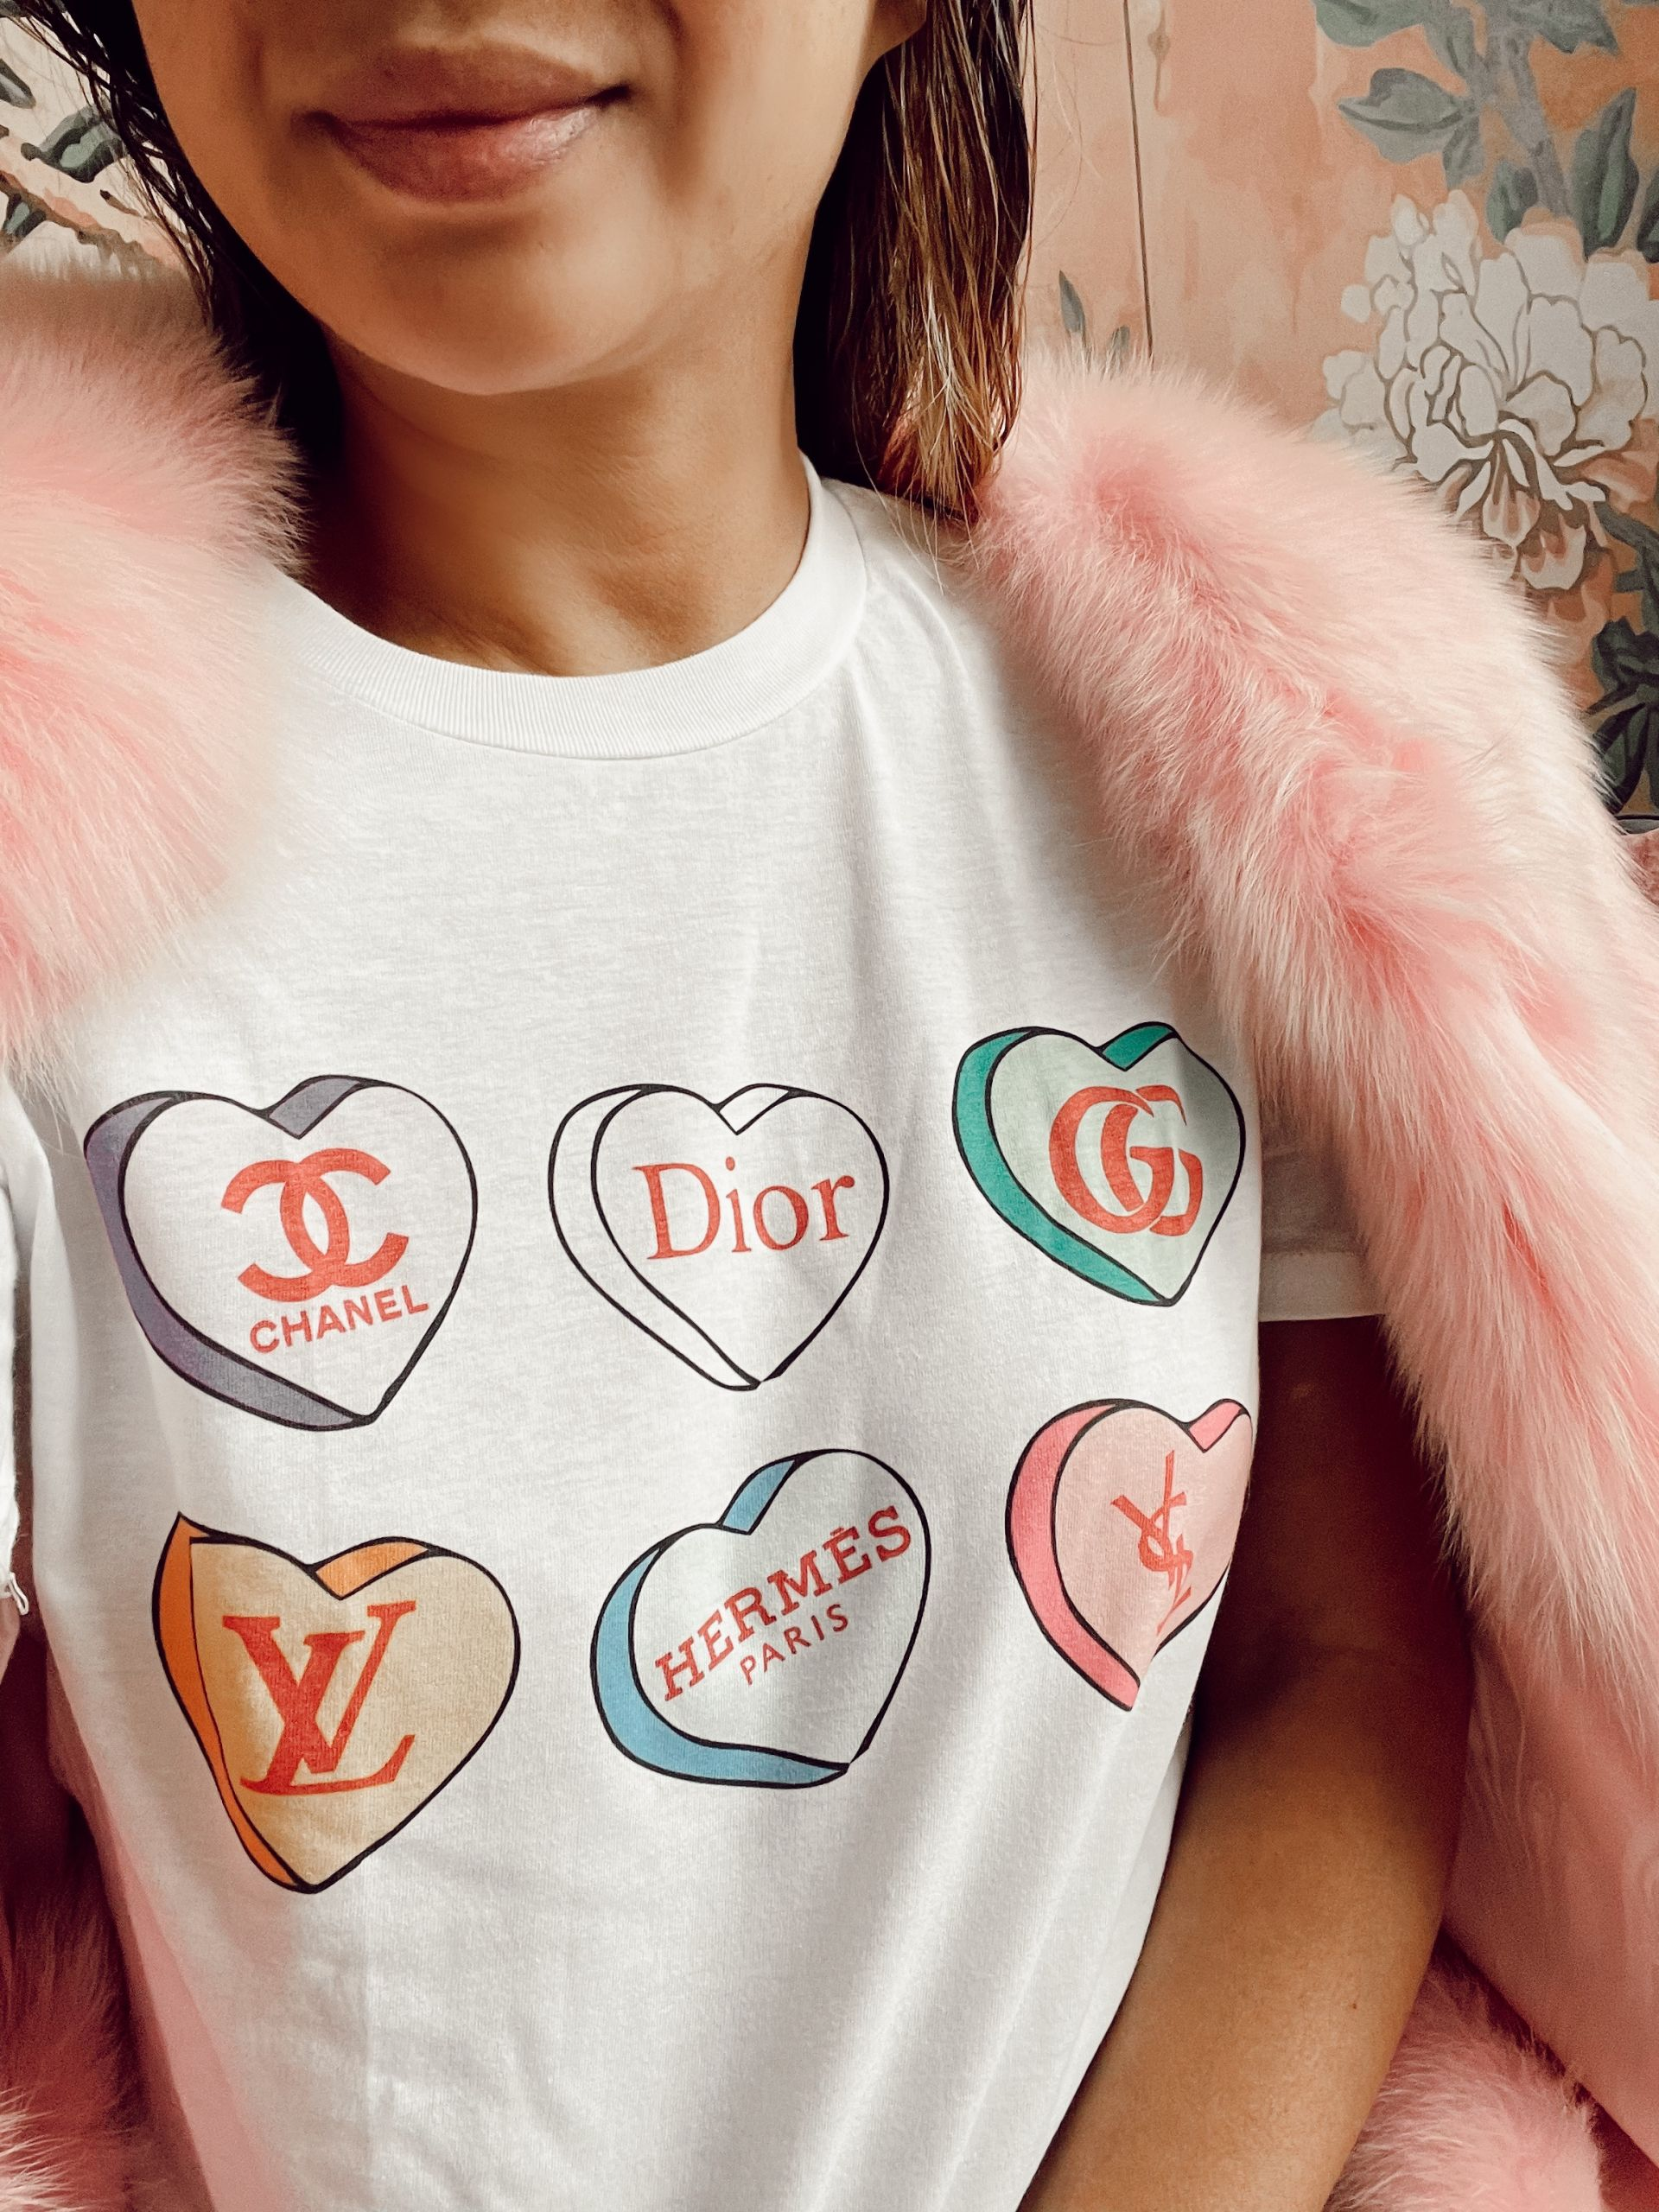 Veuve Rose Pullover, Valentine's Day Gift Guides, Vday gift guide, affordable vday gifts, gift ideas for girlfriends, valentine's day style ideas, Red Soles and Red Wine, Jennifer Worman, dyptique candles, heart pajamas